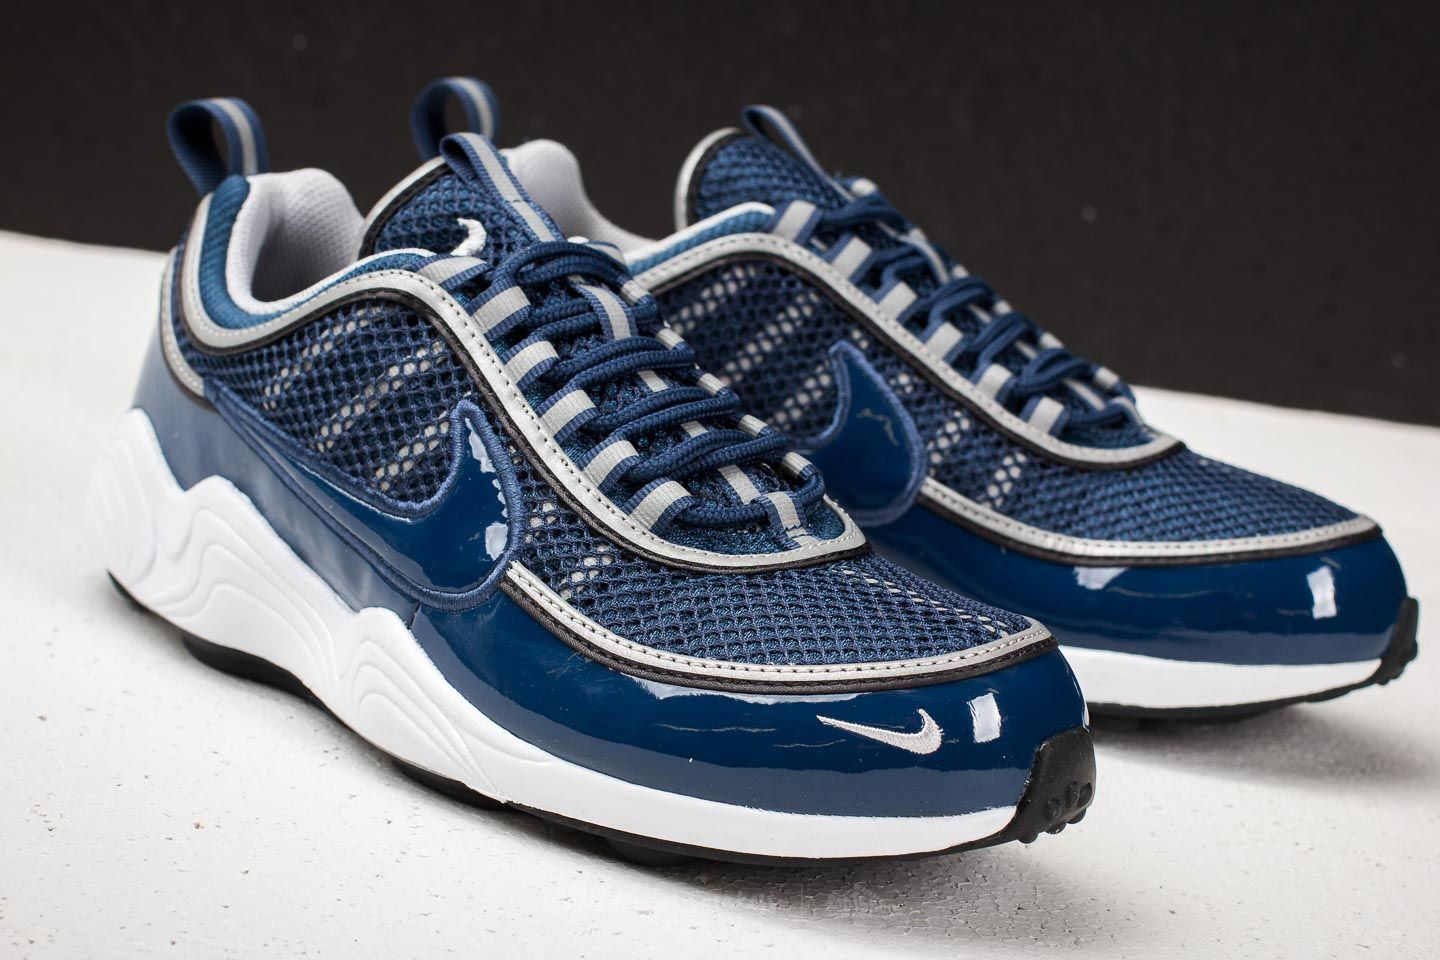 dbb88a37d2d8 ... best nike air zoom spiridon 16 navy wolf grey white at a great price  16d9b a38ee